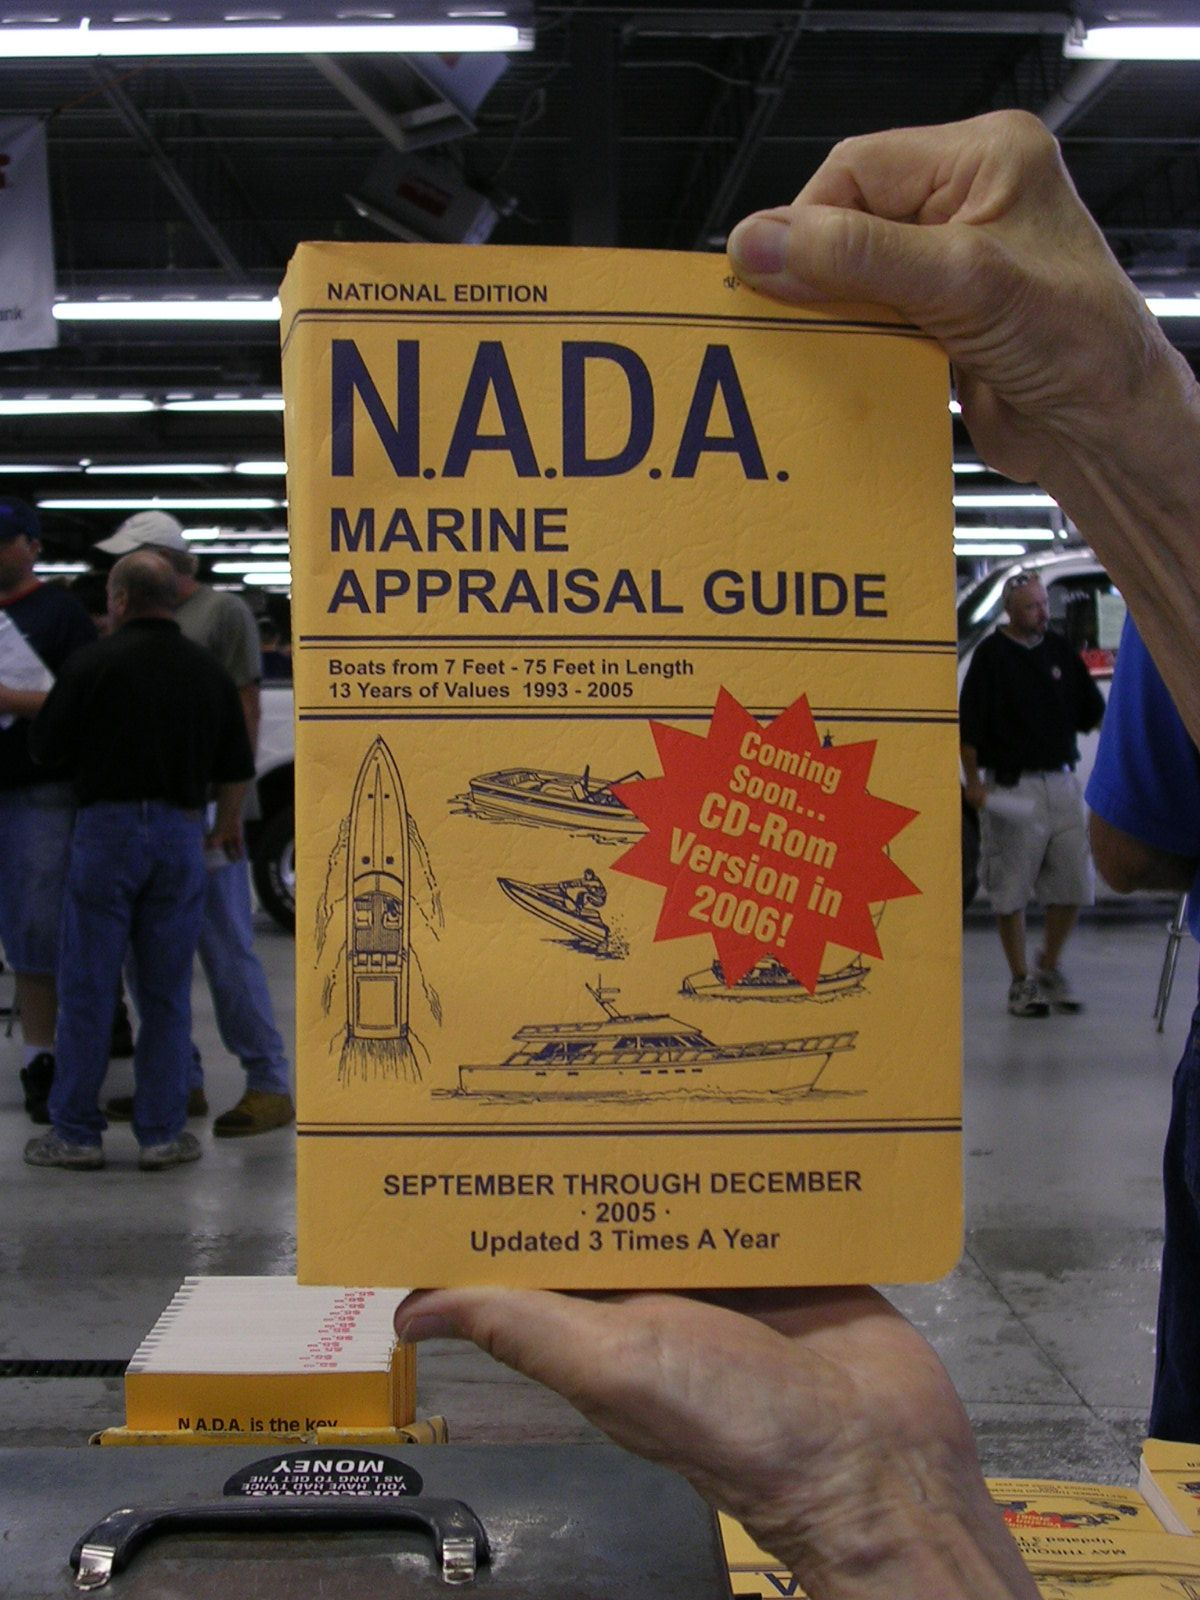 Nada Guide Is Known For Providing Price Guides Containing Prevalent